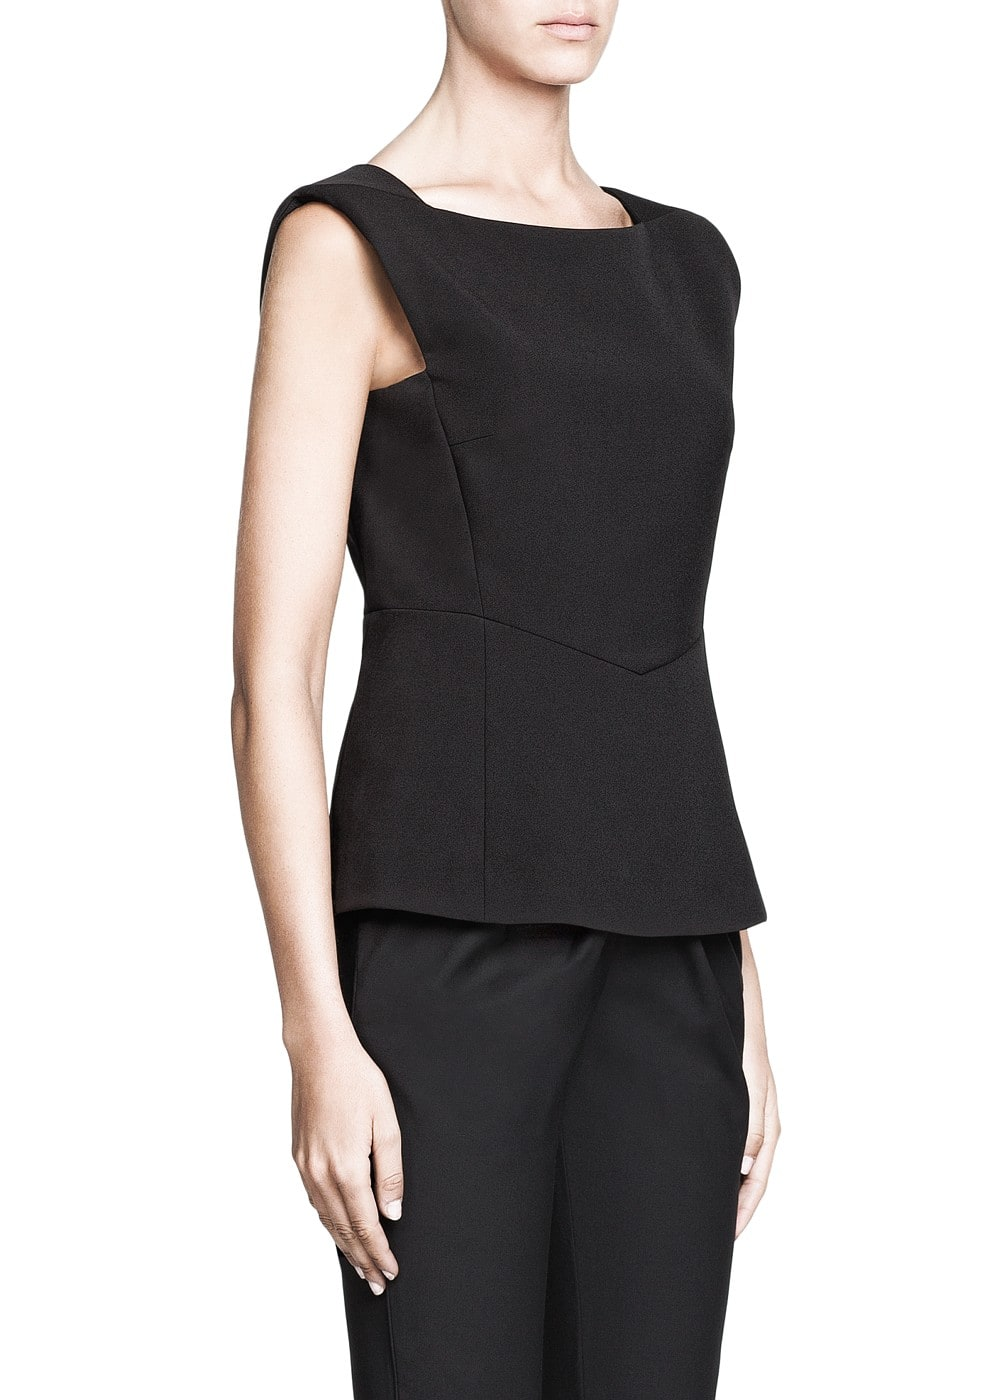 PREMIUM - Structured peplum top